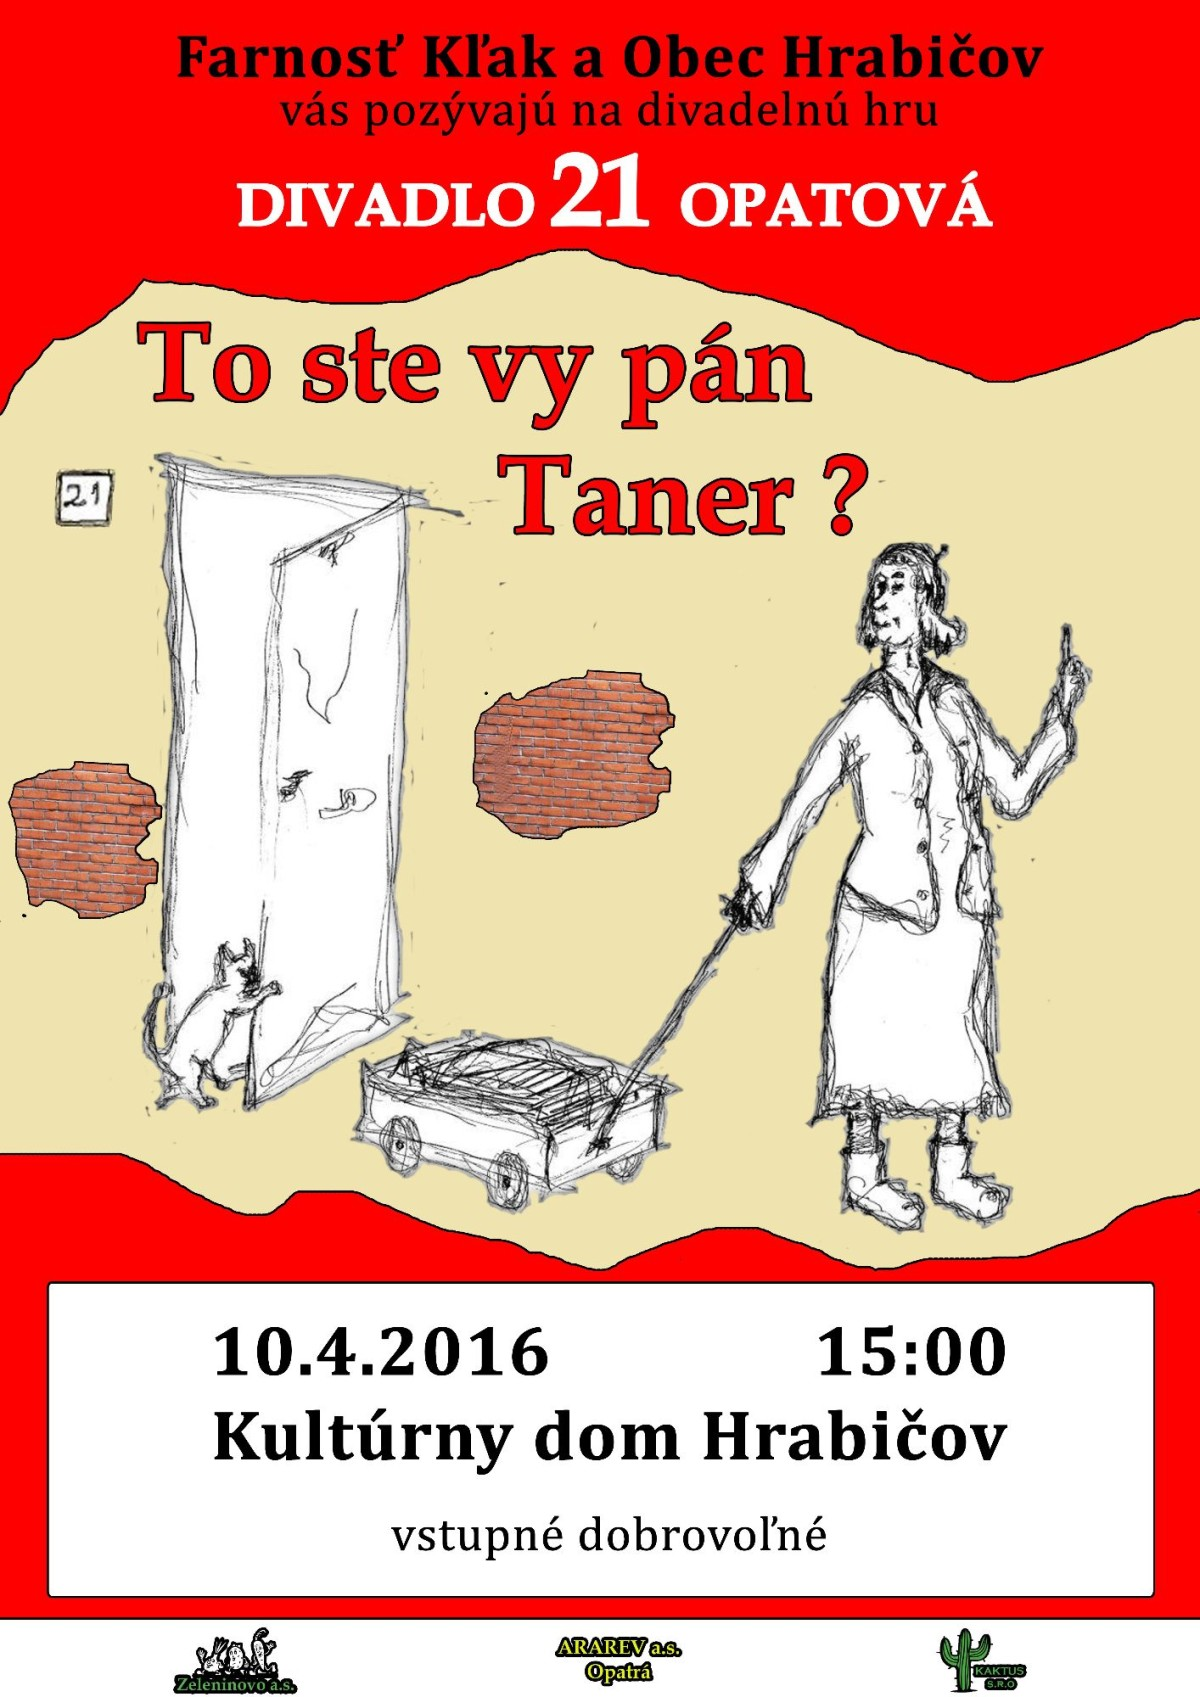 To ste vy pán Taner?